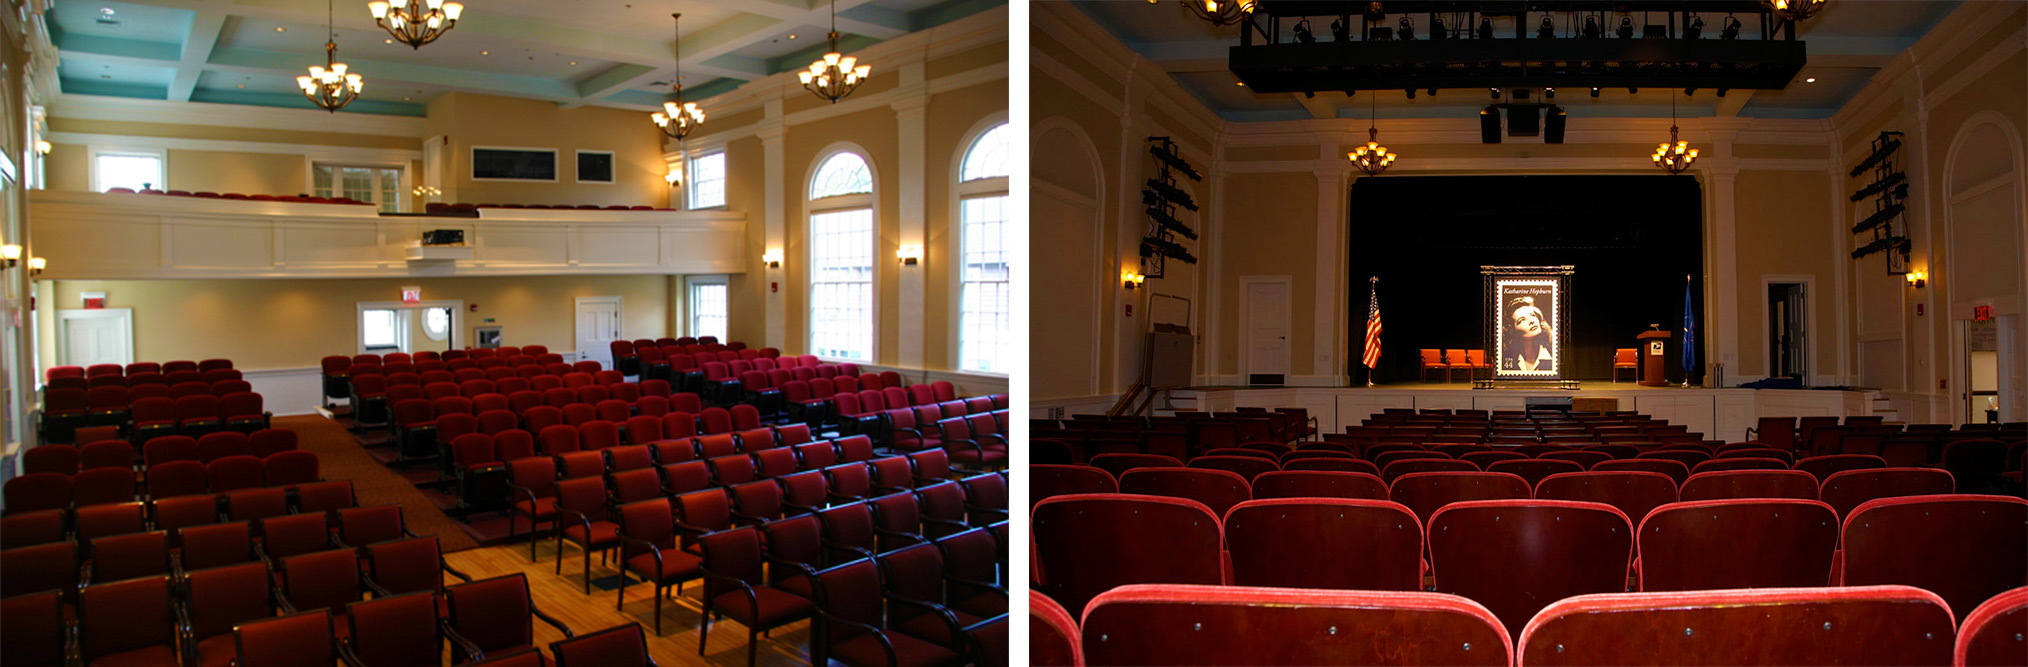 Theater Rentals Amp Event Rental Spaces In Old Saybrook Ct